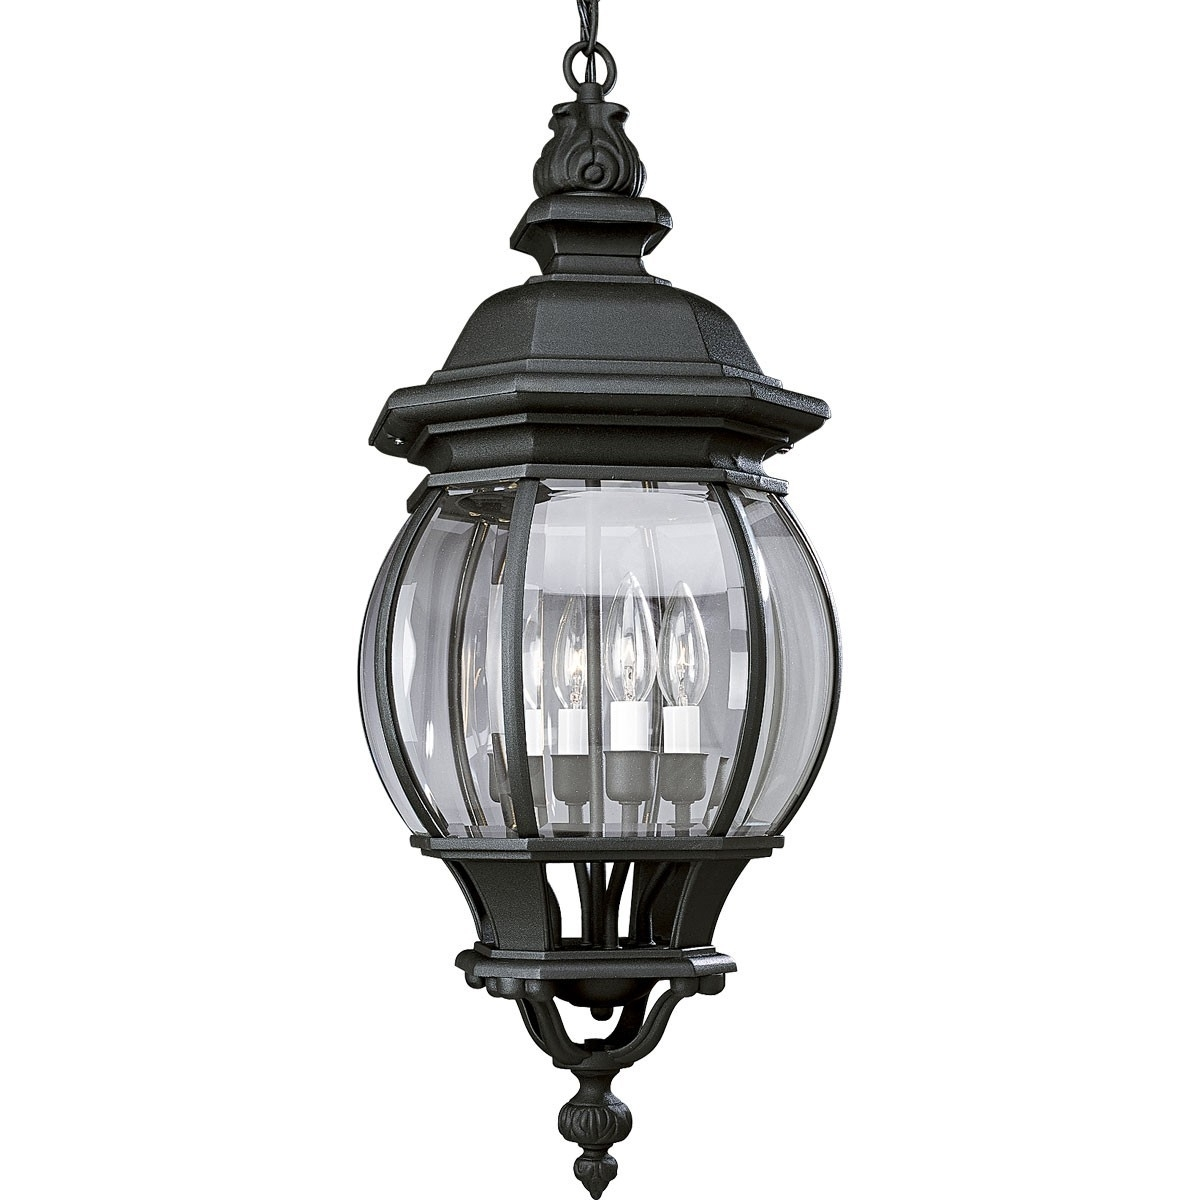 Newest White Outdoor Hanging Lanterns Regarding Onion Design Four Light Hanging Lantern With Clear Beveled Glass (View 12 of 20)